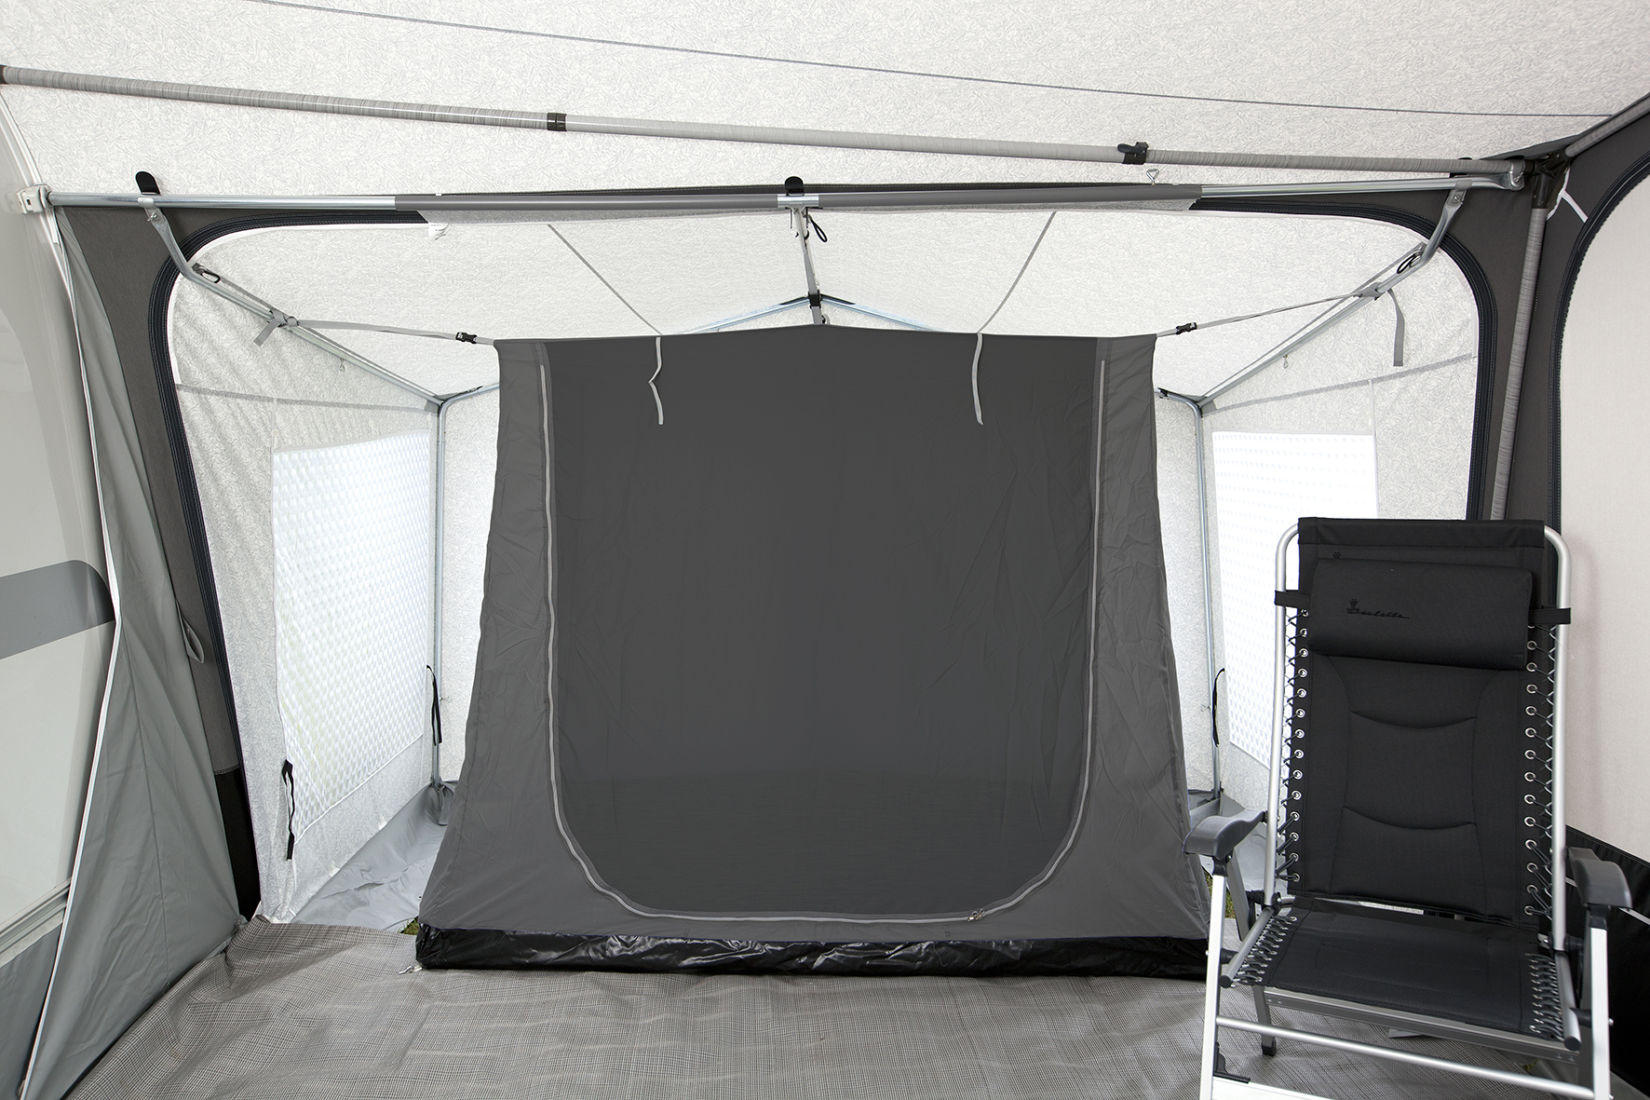 & Awning Extension Inner Tent